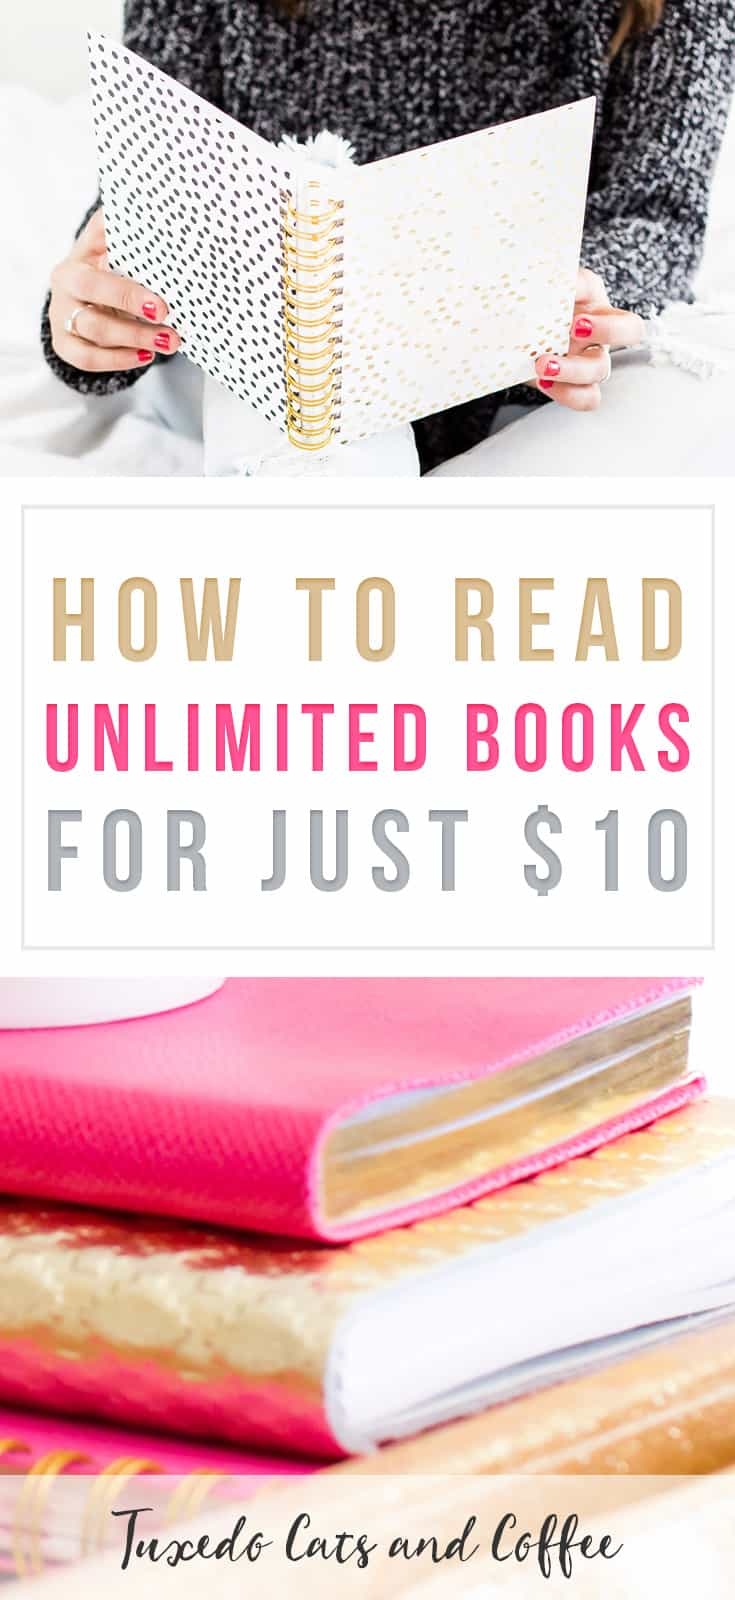 There are tons of different ways to get books - both real and digital - for free or lower priced than retail. Here's how to save money on books. Read unlimited books for just $10!